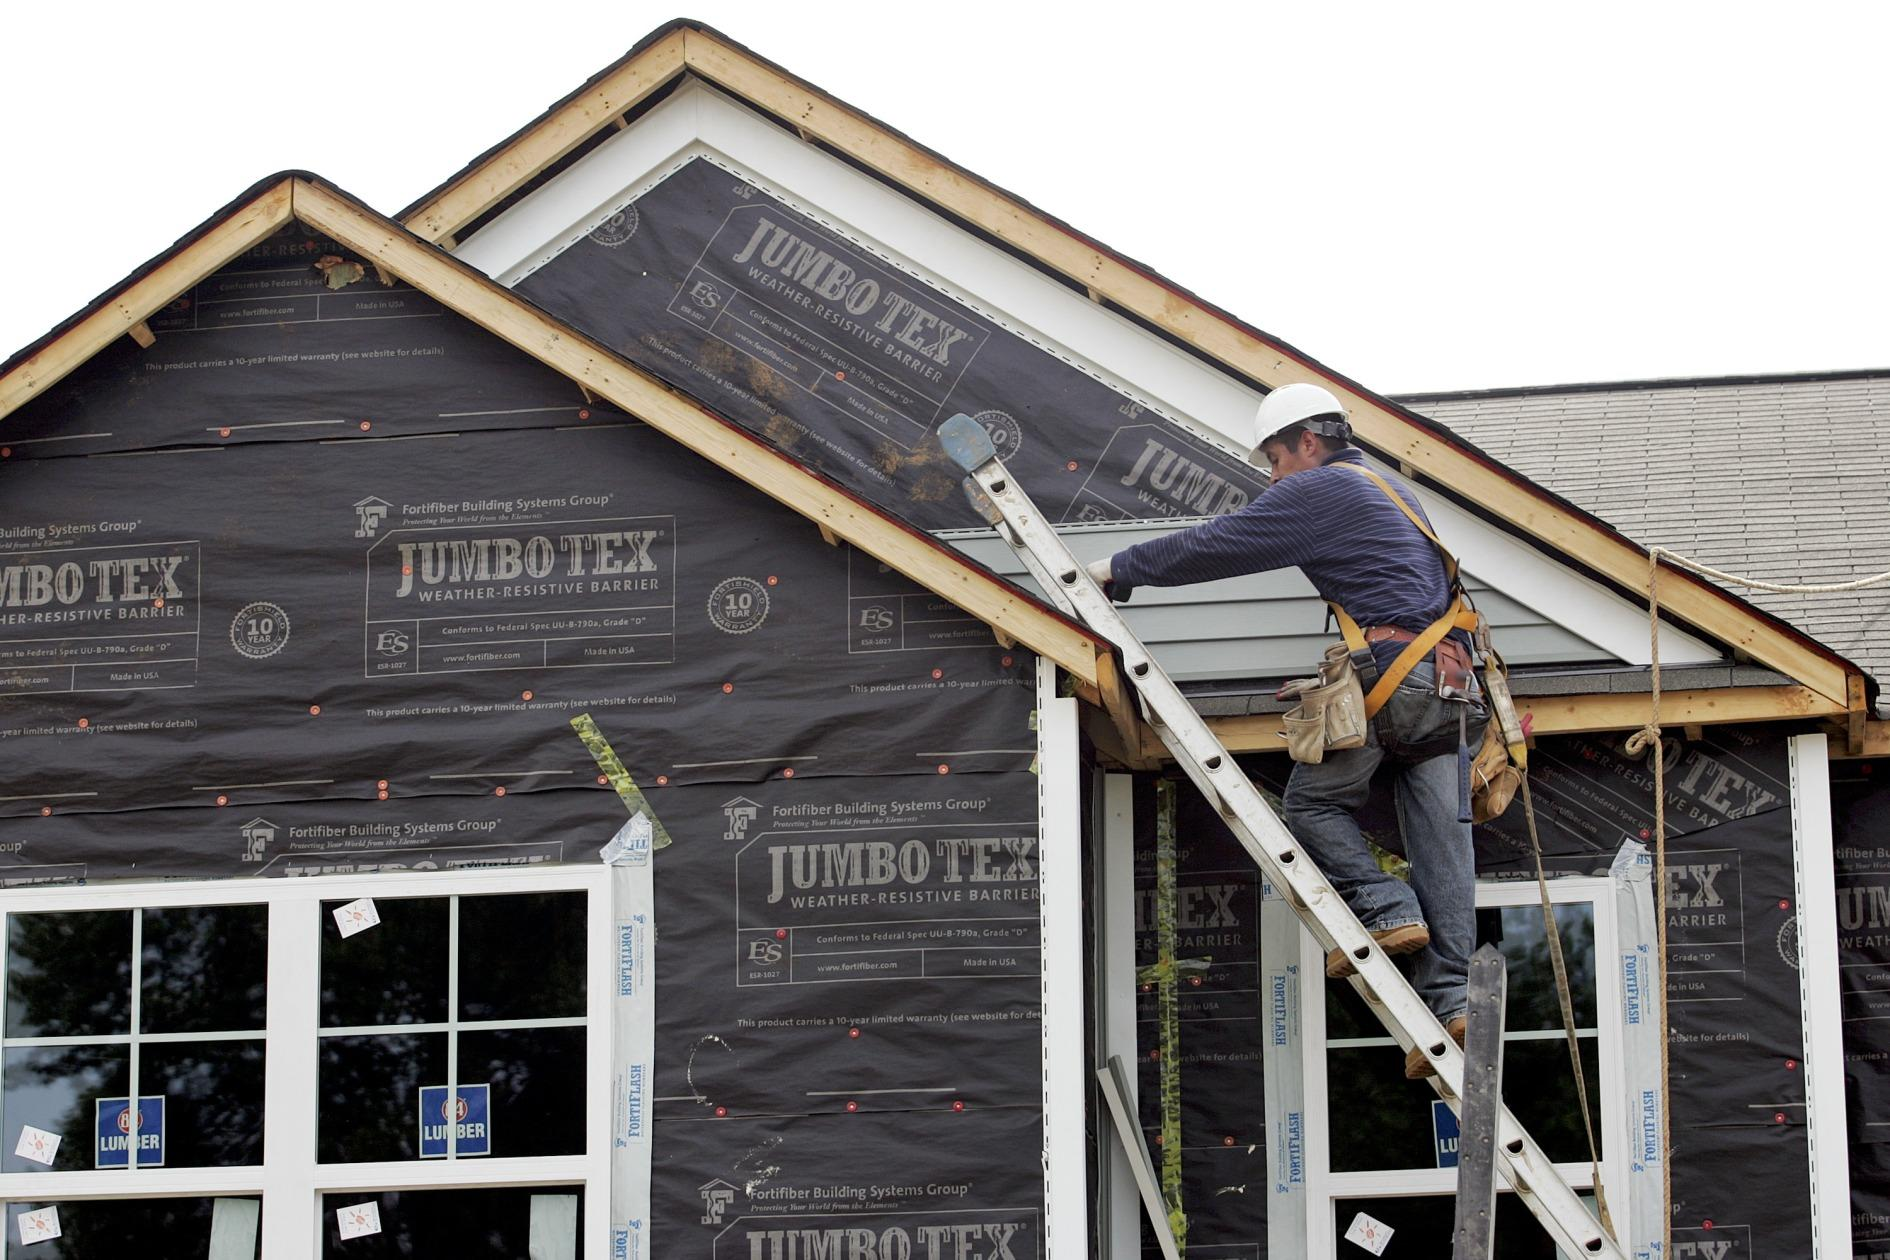 U.S. Homebuilder Sentiment Strengthens, Topping All Projections